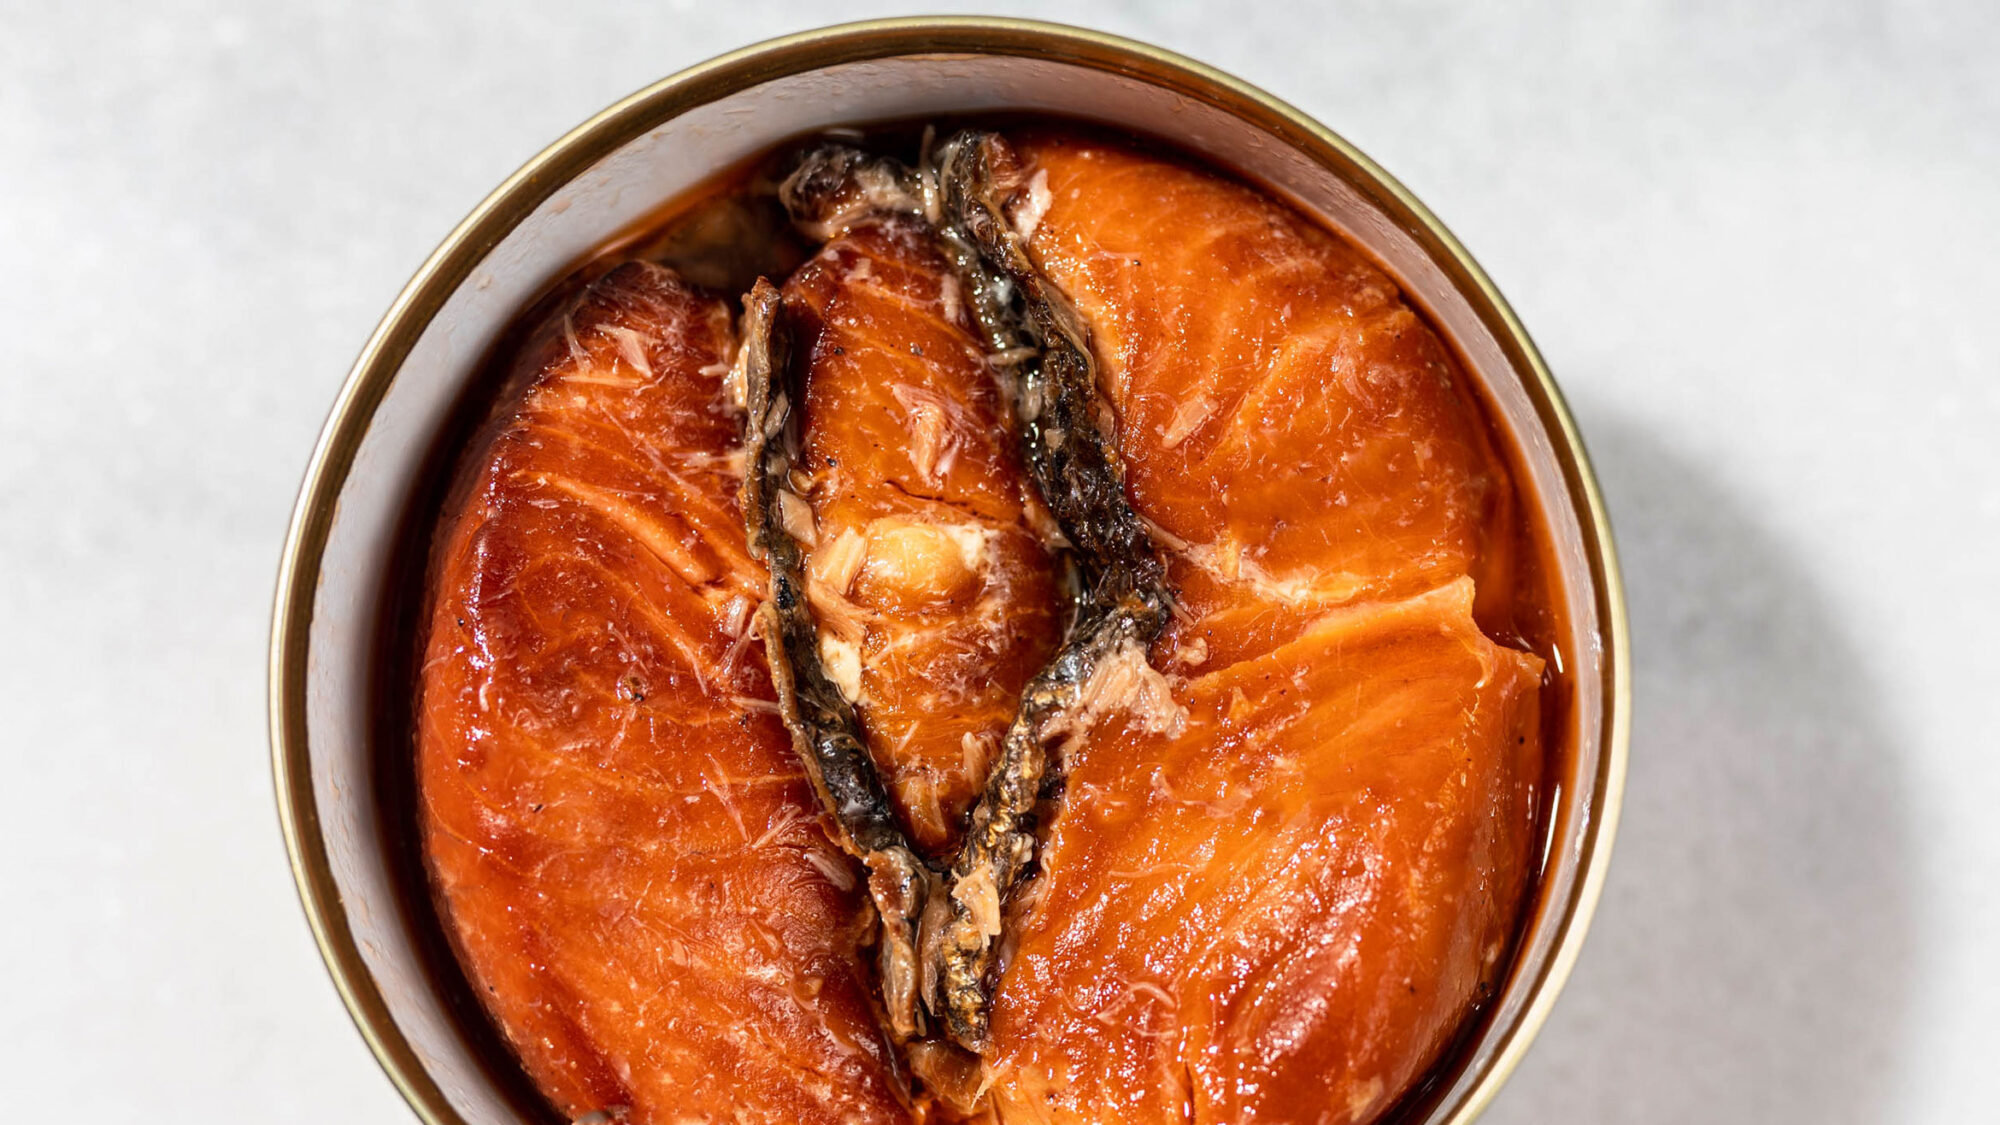 Article-Canned-Smoked-Salmon-Wildfish-Cannery